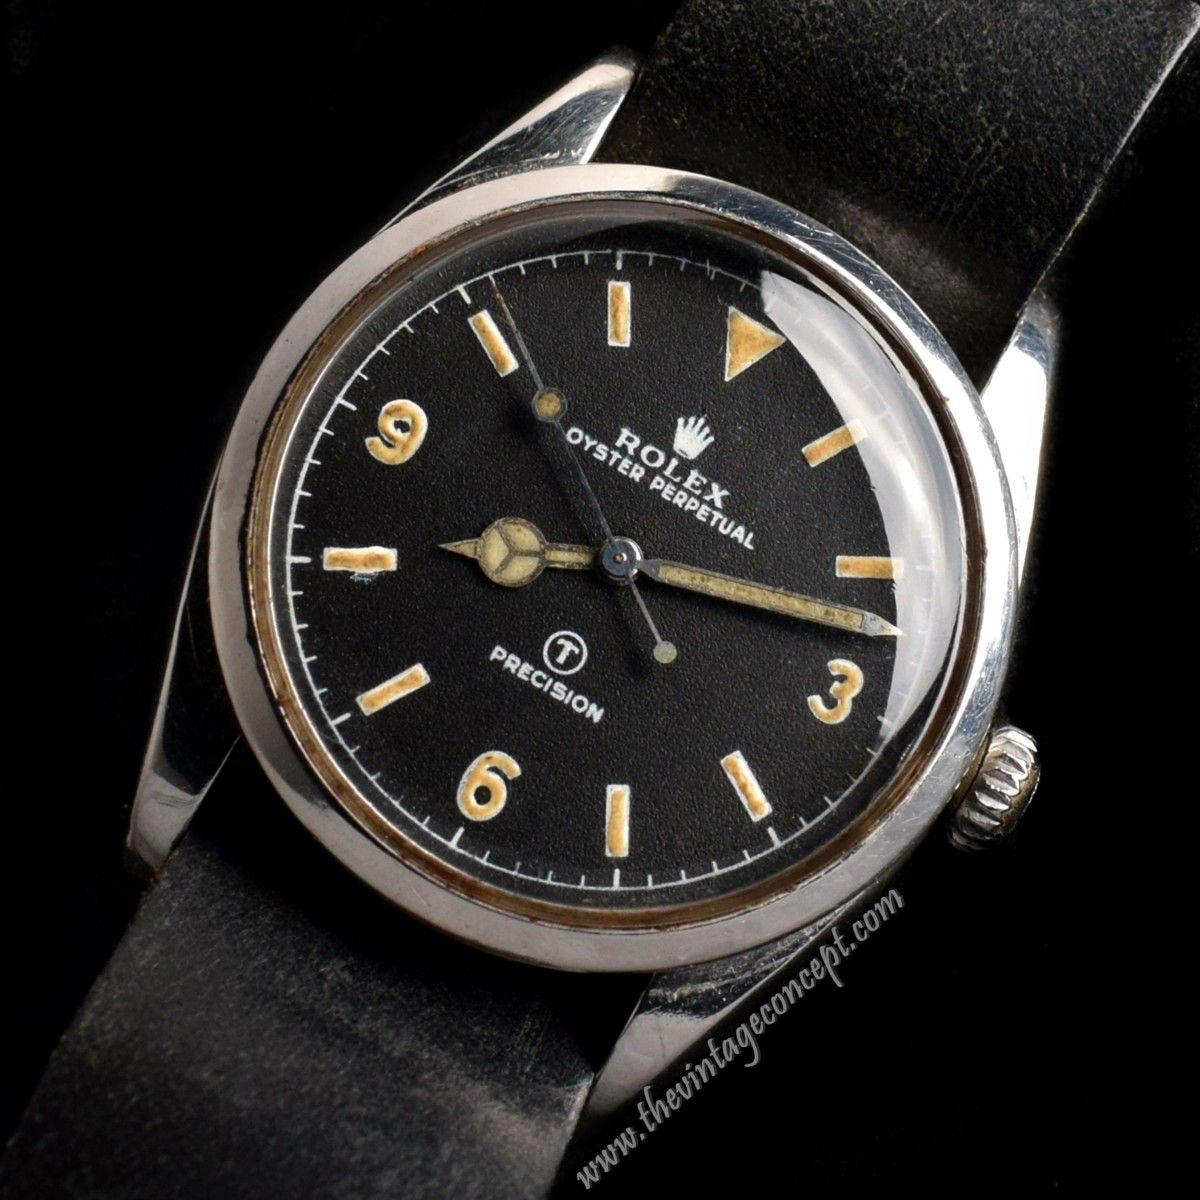 Rolex Explorer Military 6150 The Vintage Concept In 2020 Rolex Explorer Rolex Models Vintage Rolex